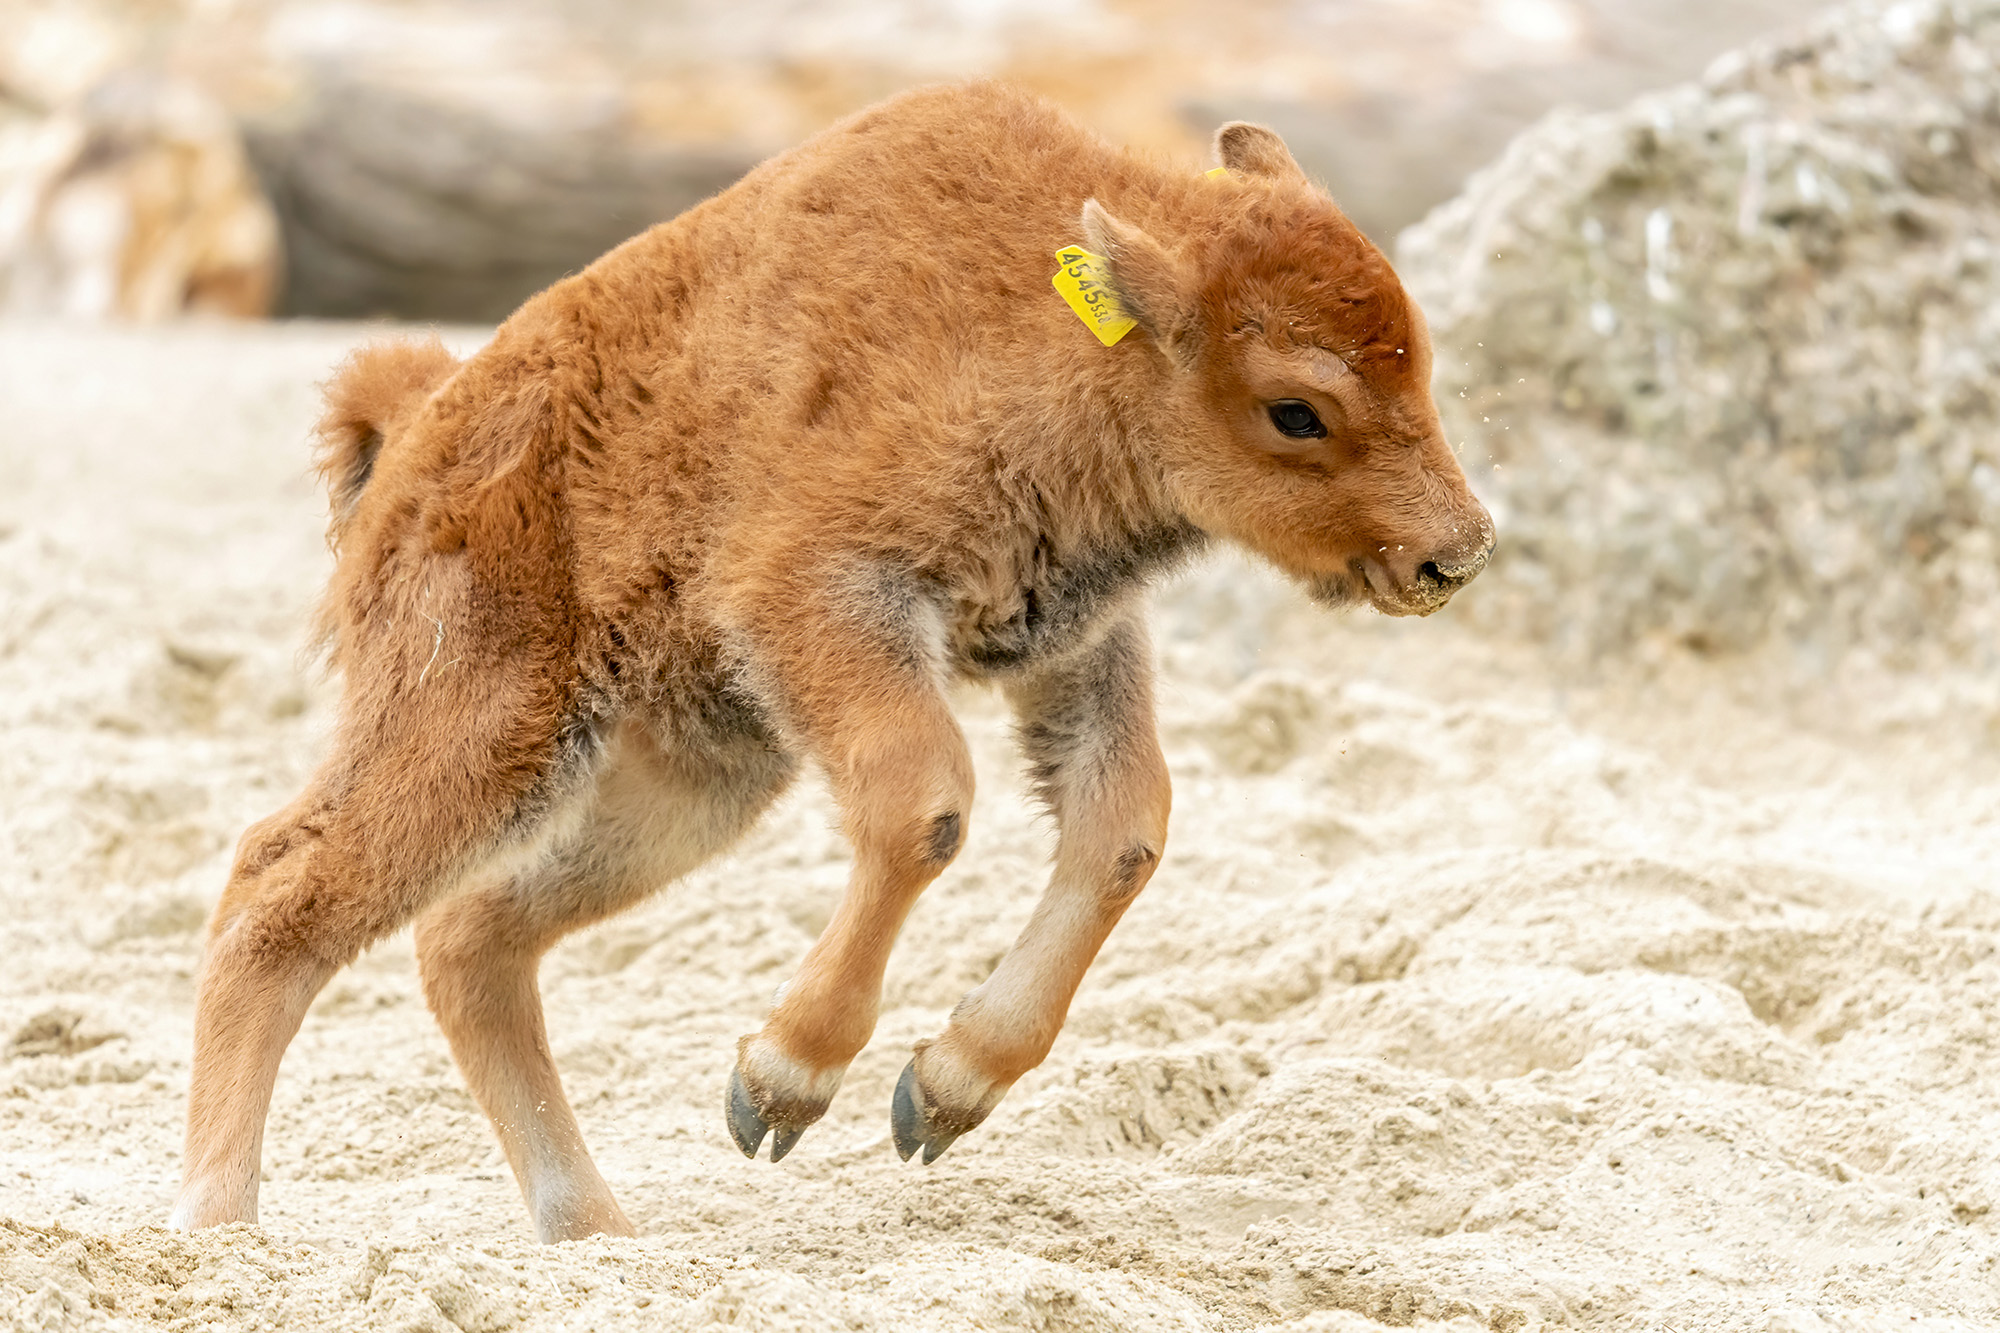 VIDEO: Newborn Calf 'Calamity Jane' Is A Knockout Hit With Zoo Fans